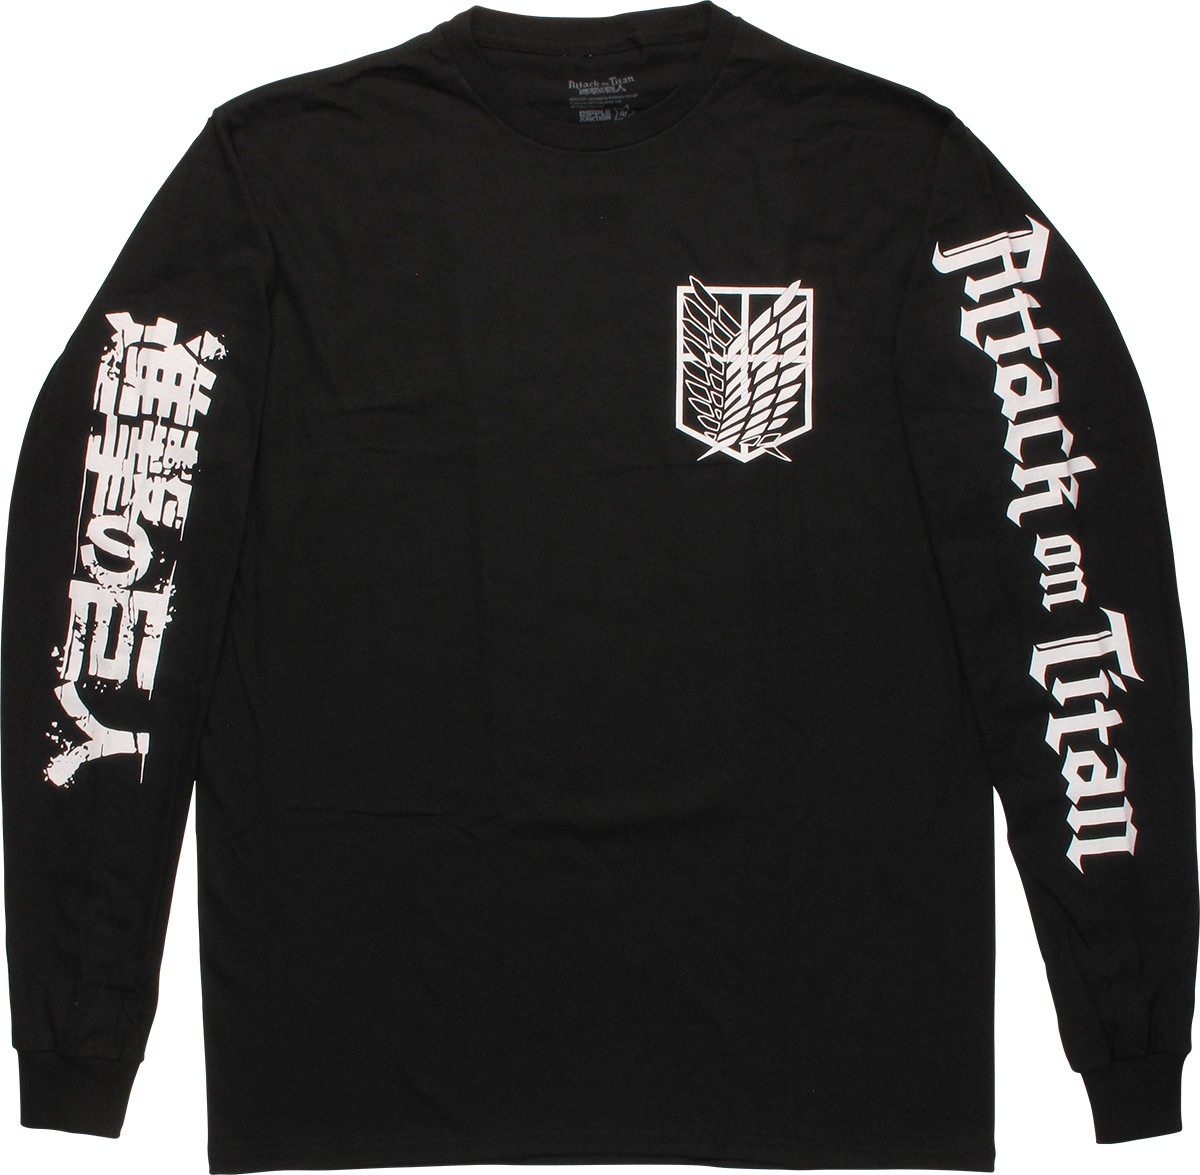 Attack on titan scout shield long sleeve t shirt for T shirt with long sleeves